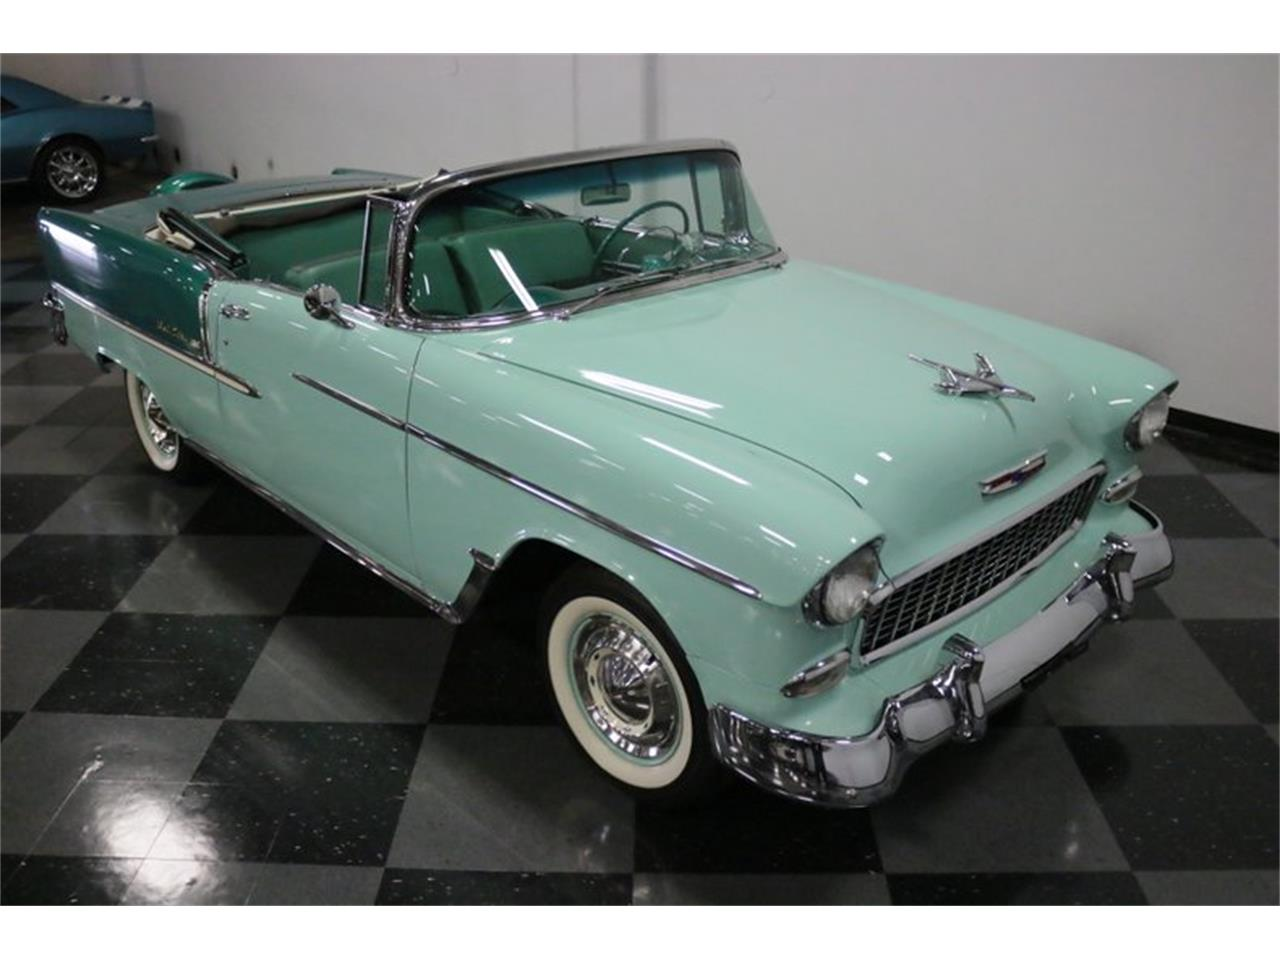 Large Picture of Classic '55 Chevrolet Bel Air located in Ft Worth Texas Offered by Streetside Classics - Dallas / Fort Worth - QAW8